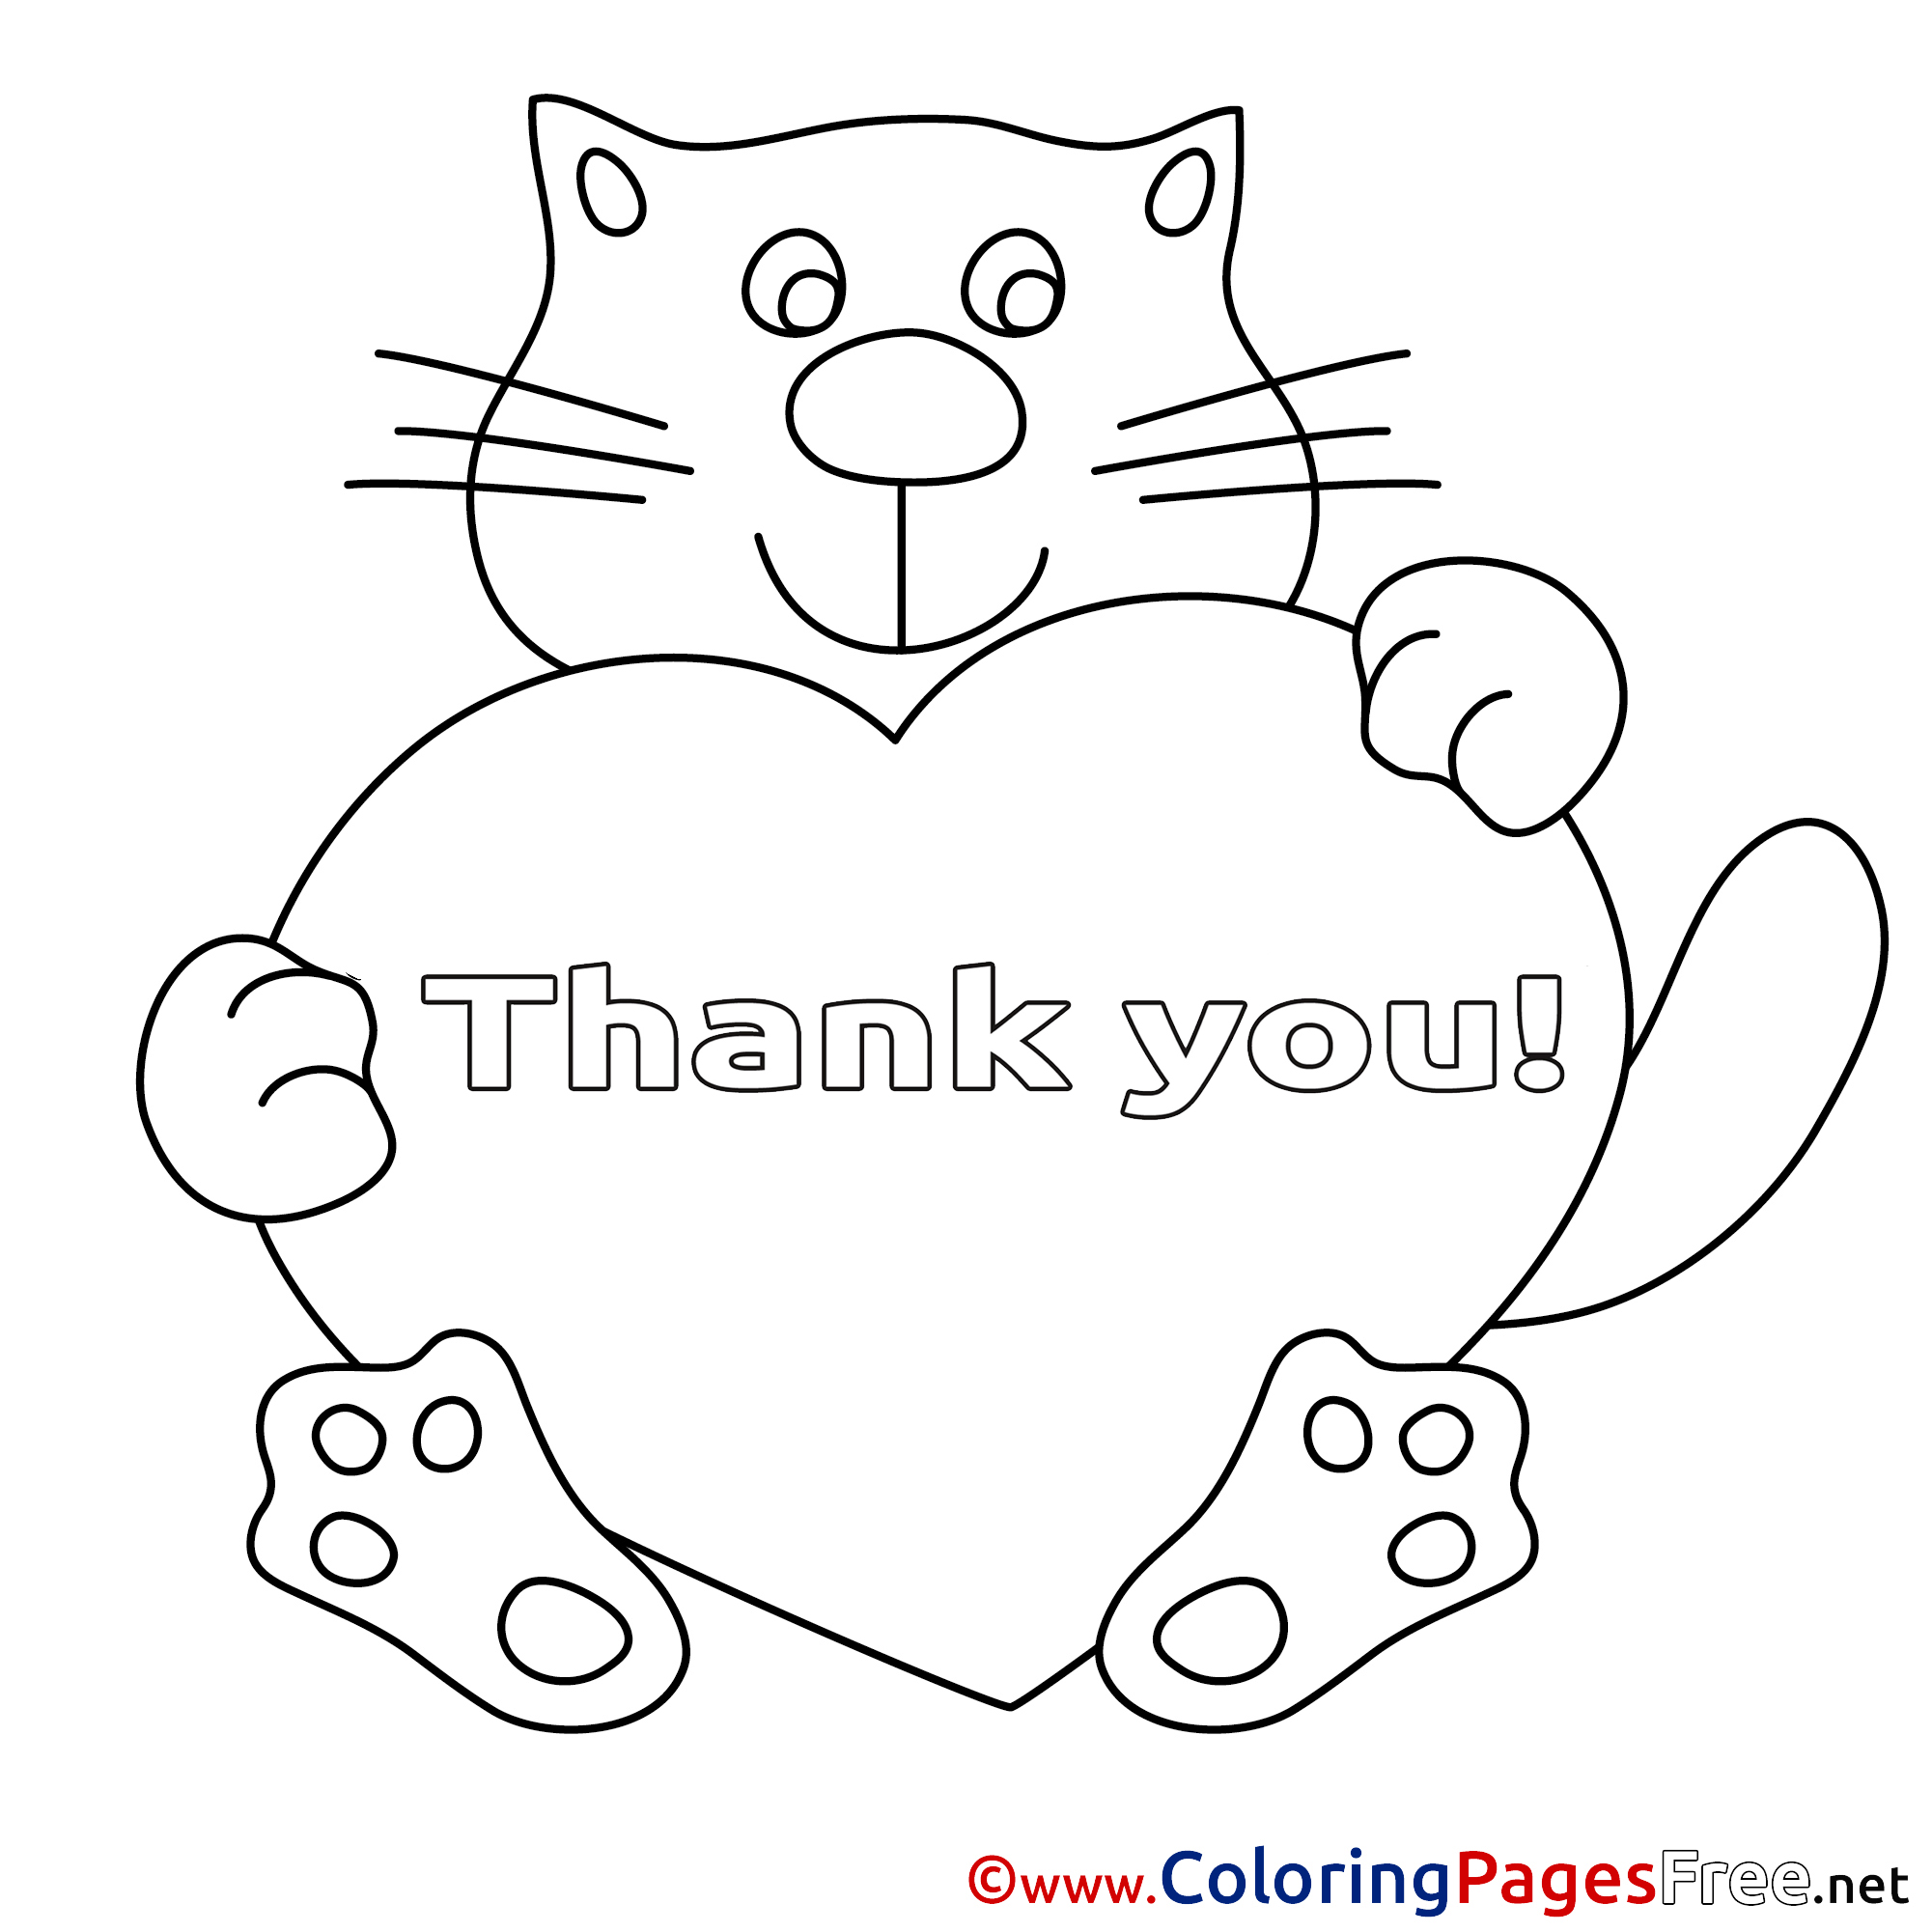 Heart Cat Thank You Colouring Sheet